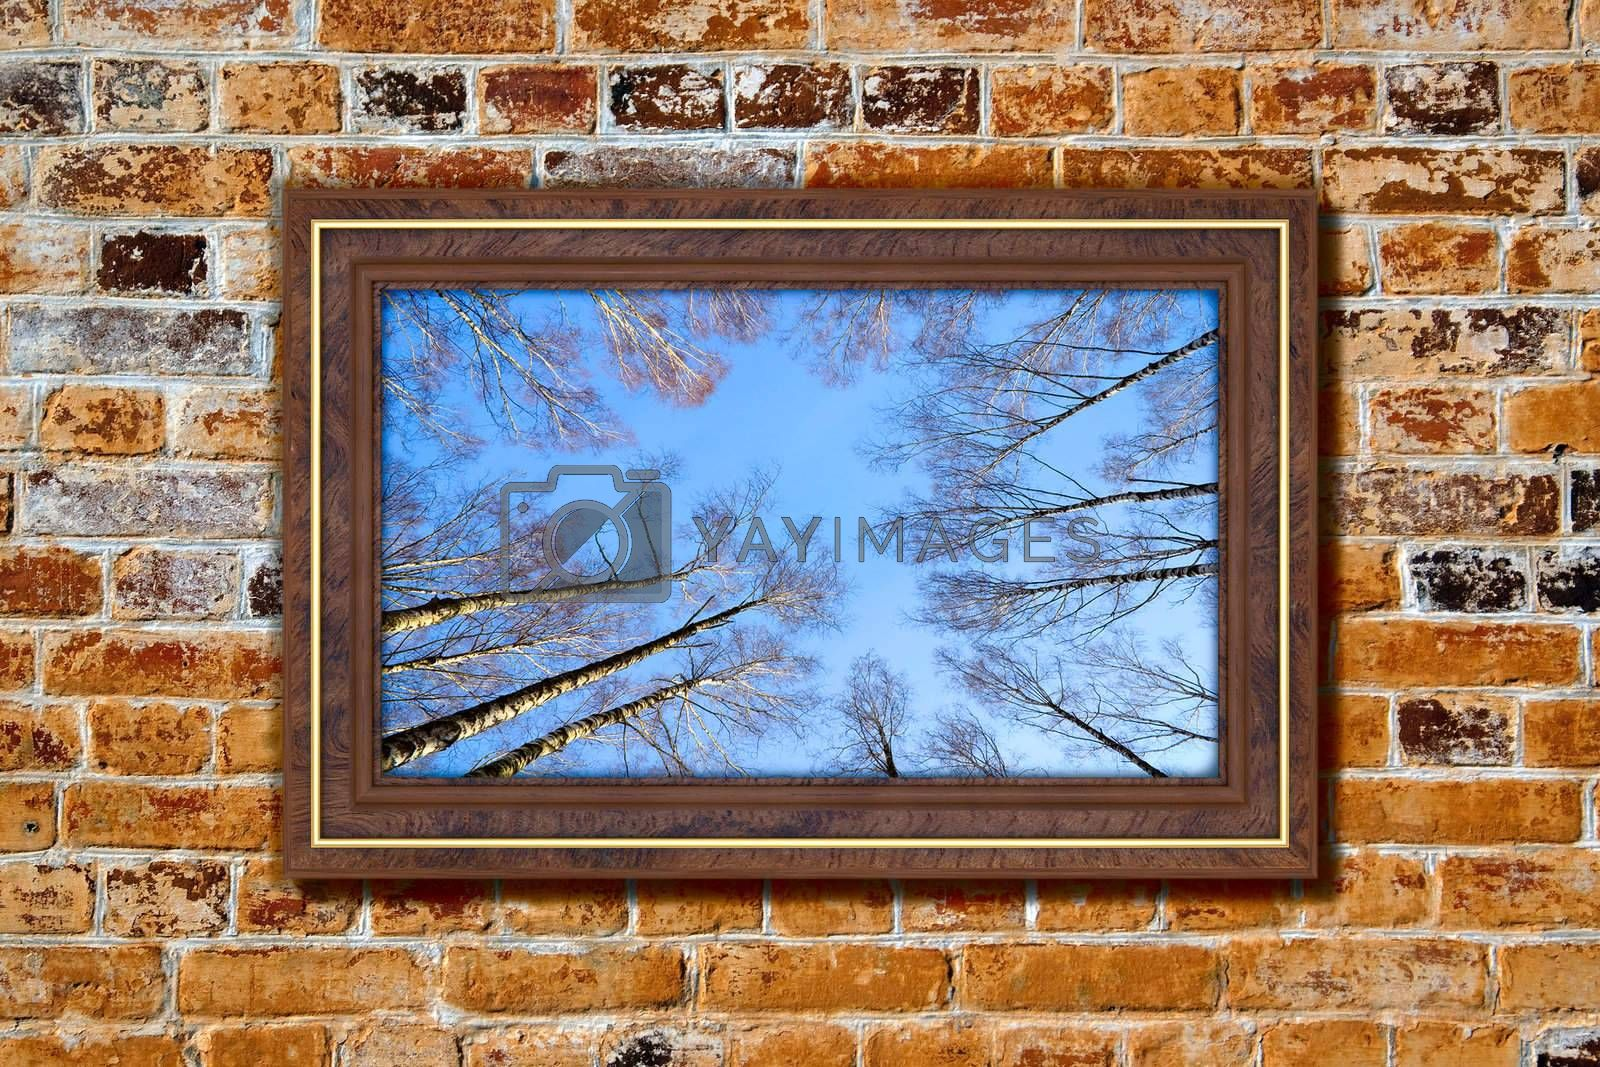 Photo in modern frame on the old brick wall